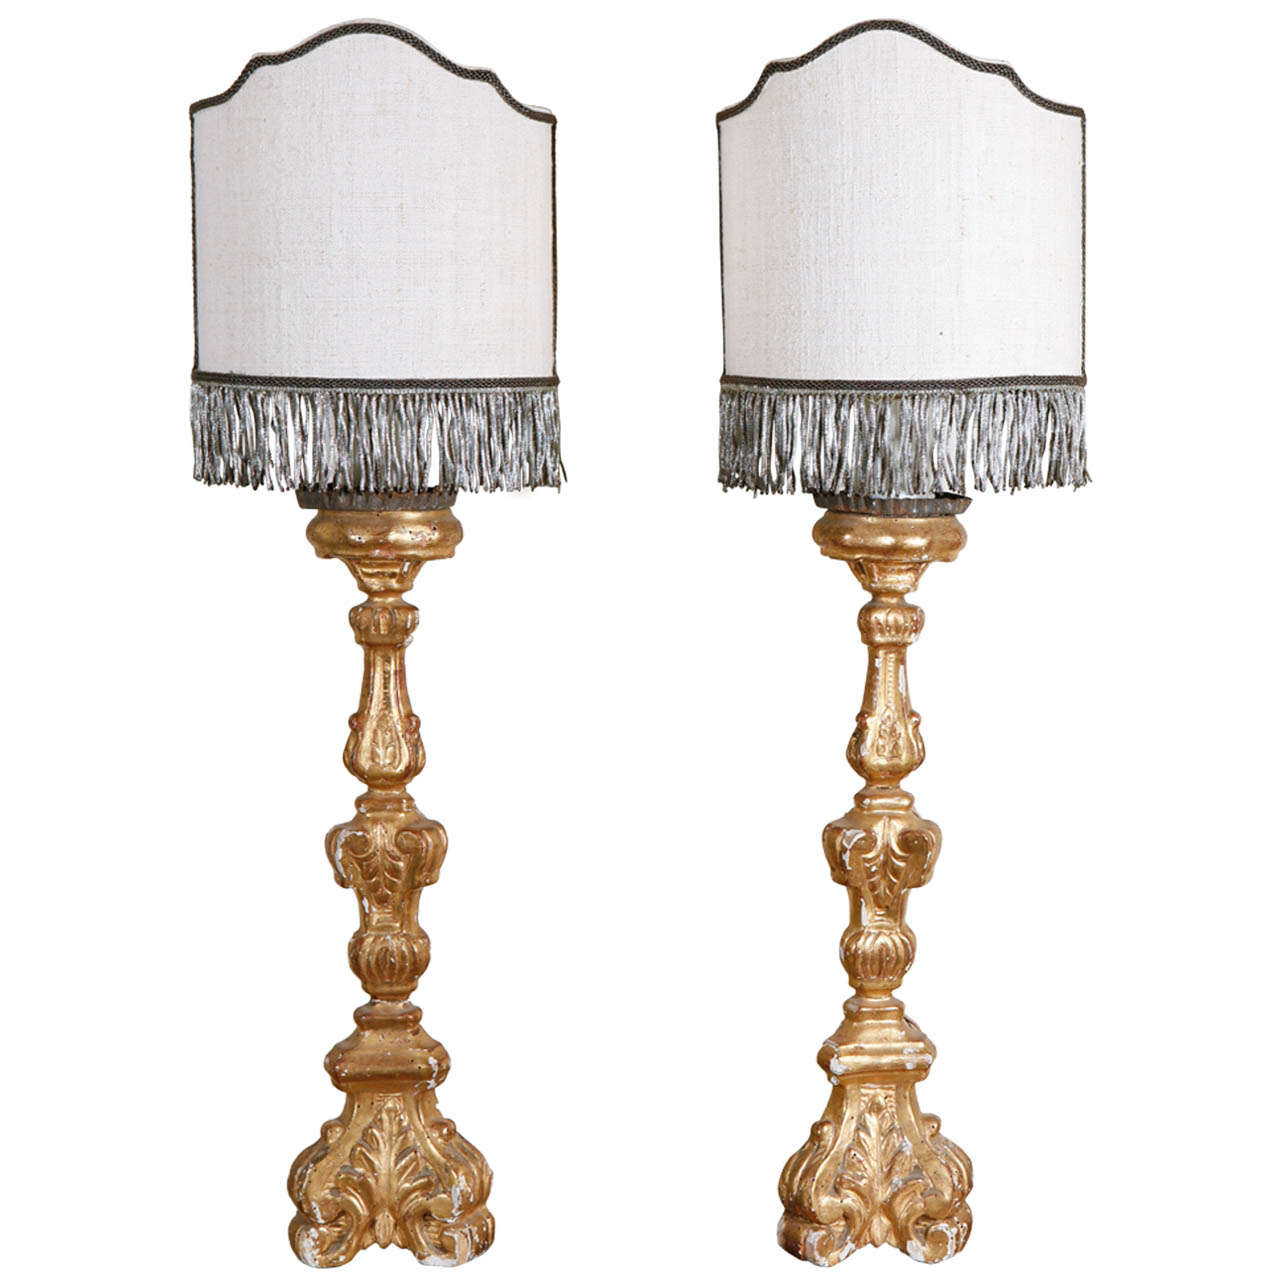 Pair of Small French Candlestick Lamps at 1stdibs